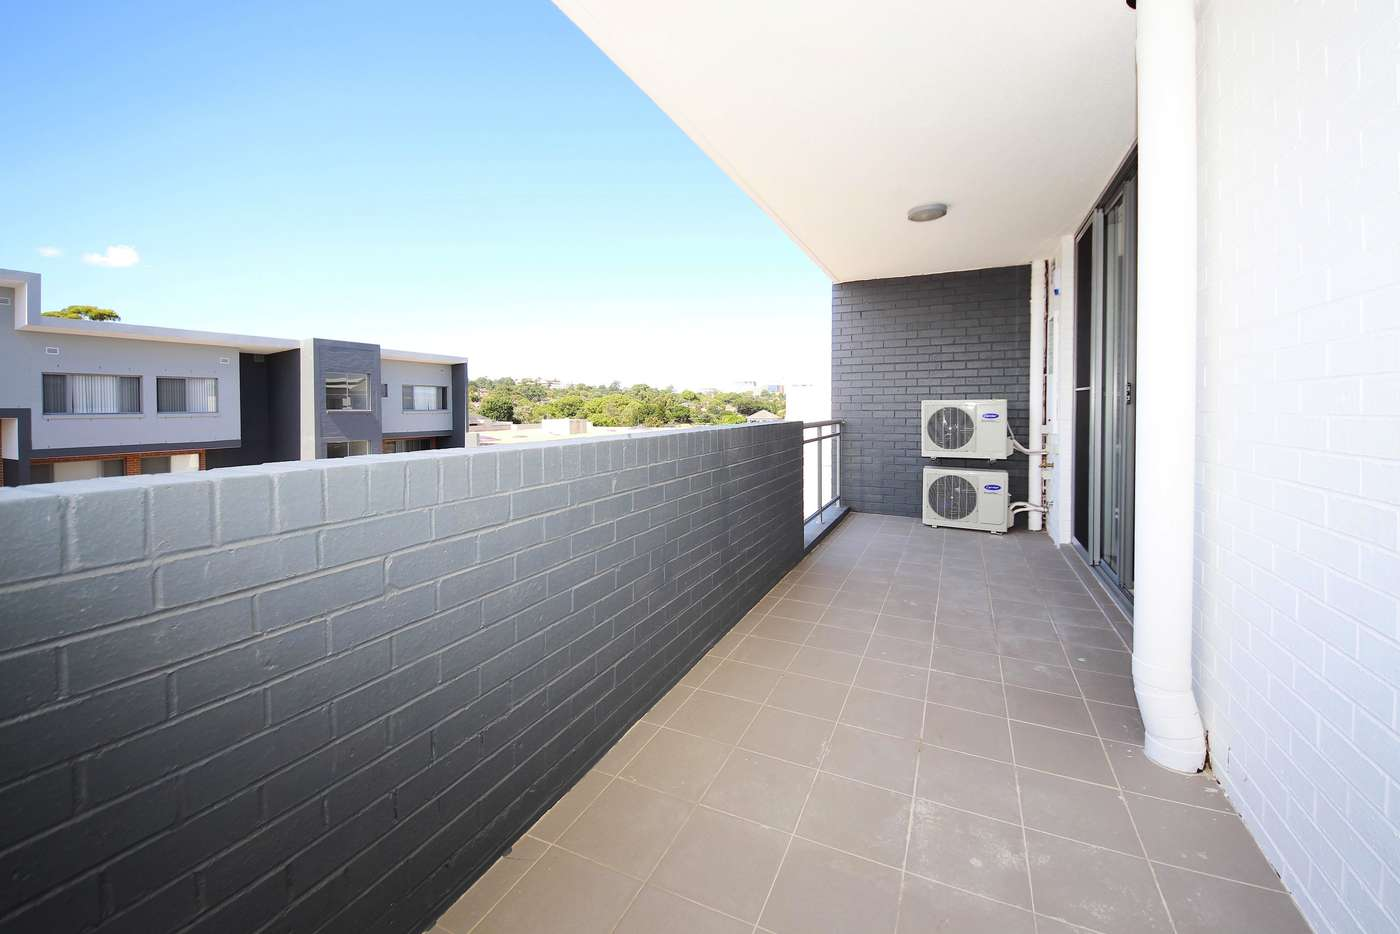 Seventh view of Homely unit listing, 26/34-36 Herbert St, West Ryde NSW 2114